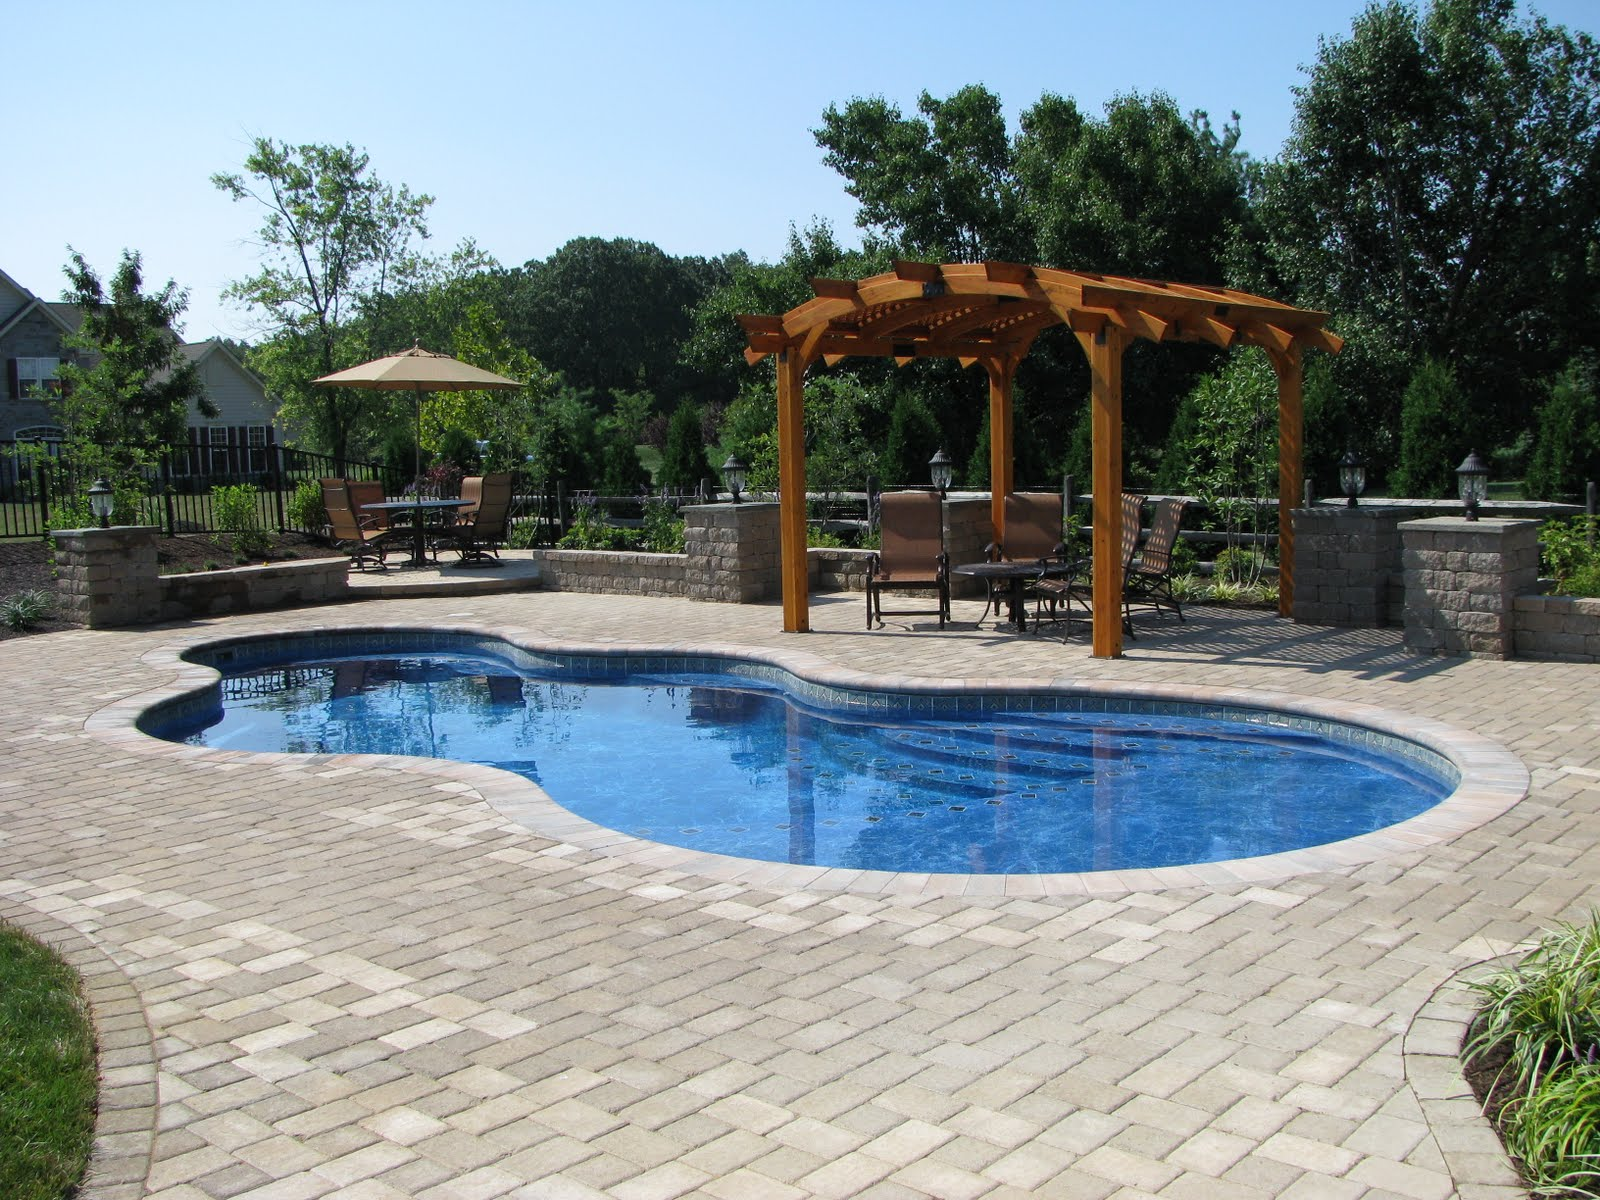 Crystal palace pools blog green ridge landscaping inc for Pool landscaping